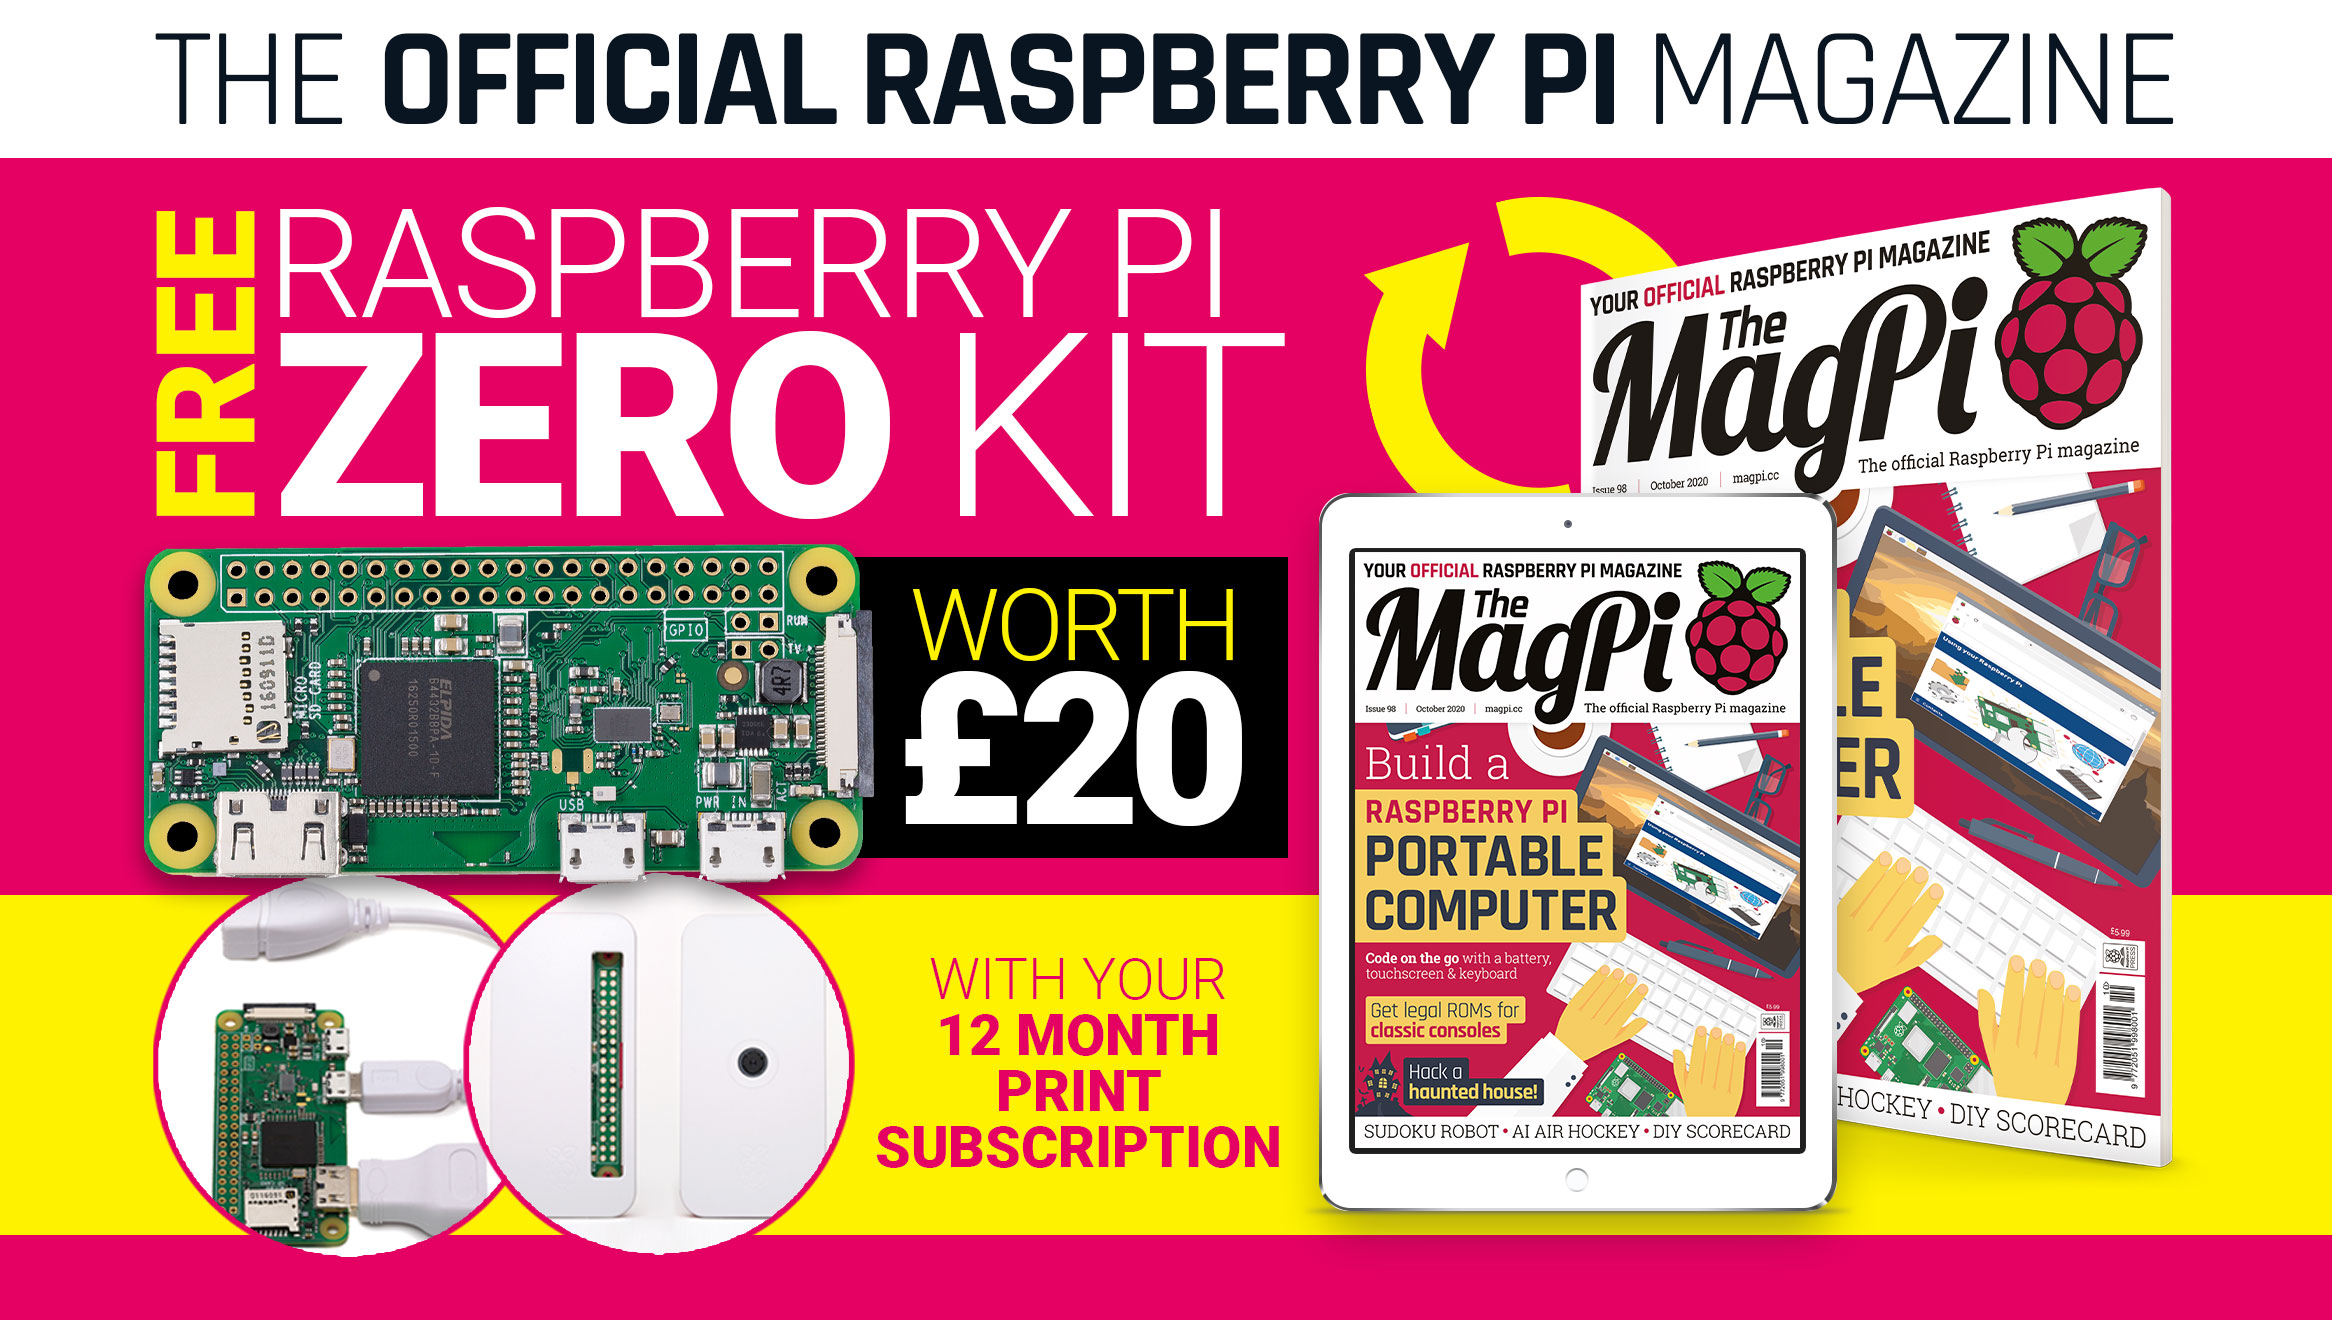 The MagPi issue 98 cover